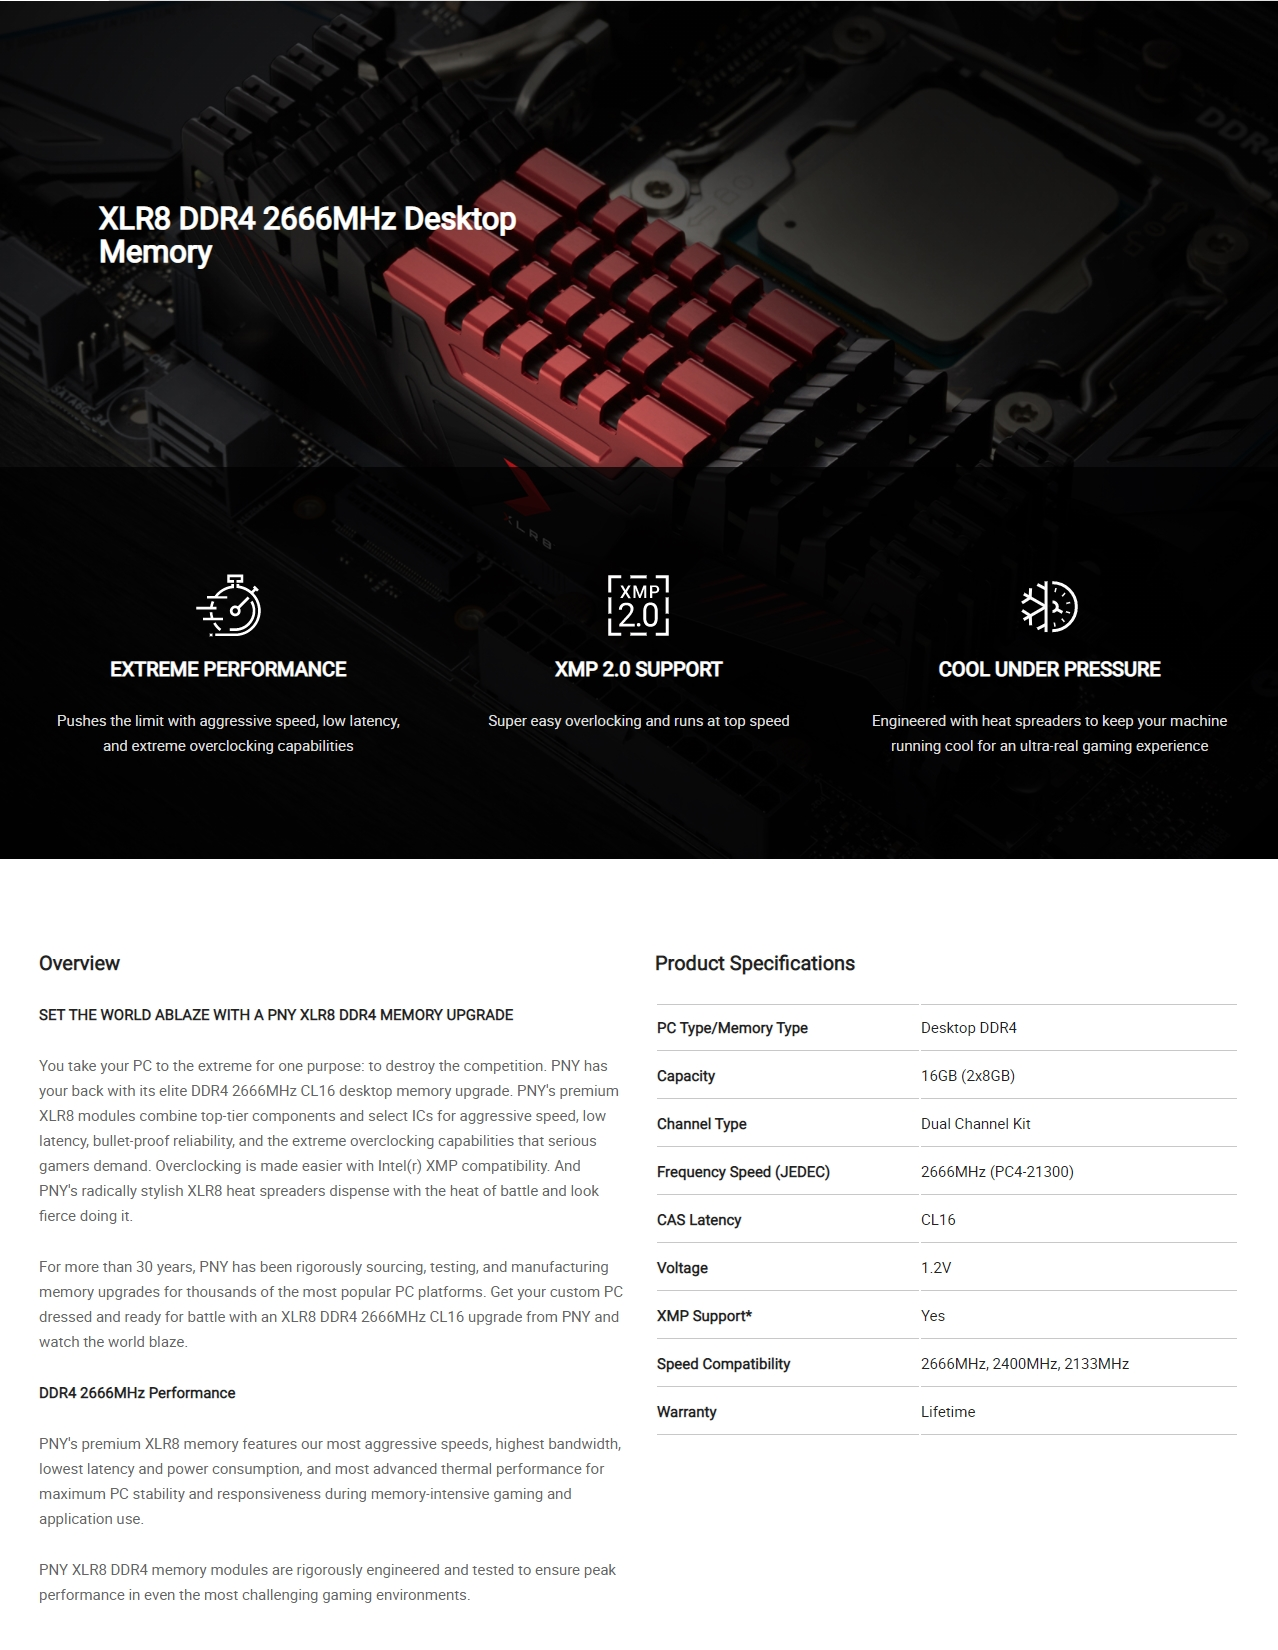 A large marketing image providing additional information about the product PNY XLR8 16GB (2x8GB) DDR4 C16 2666MHz - Additional alt info not provided